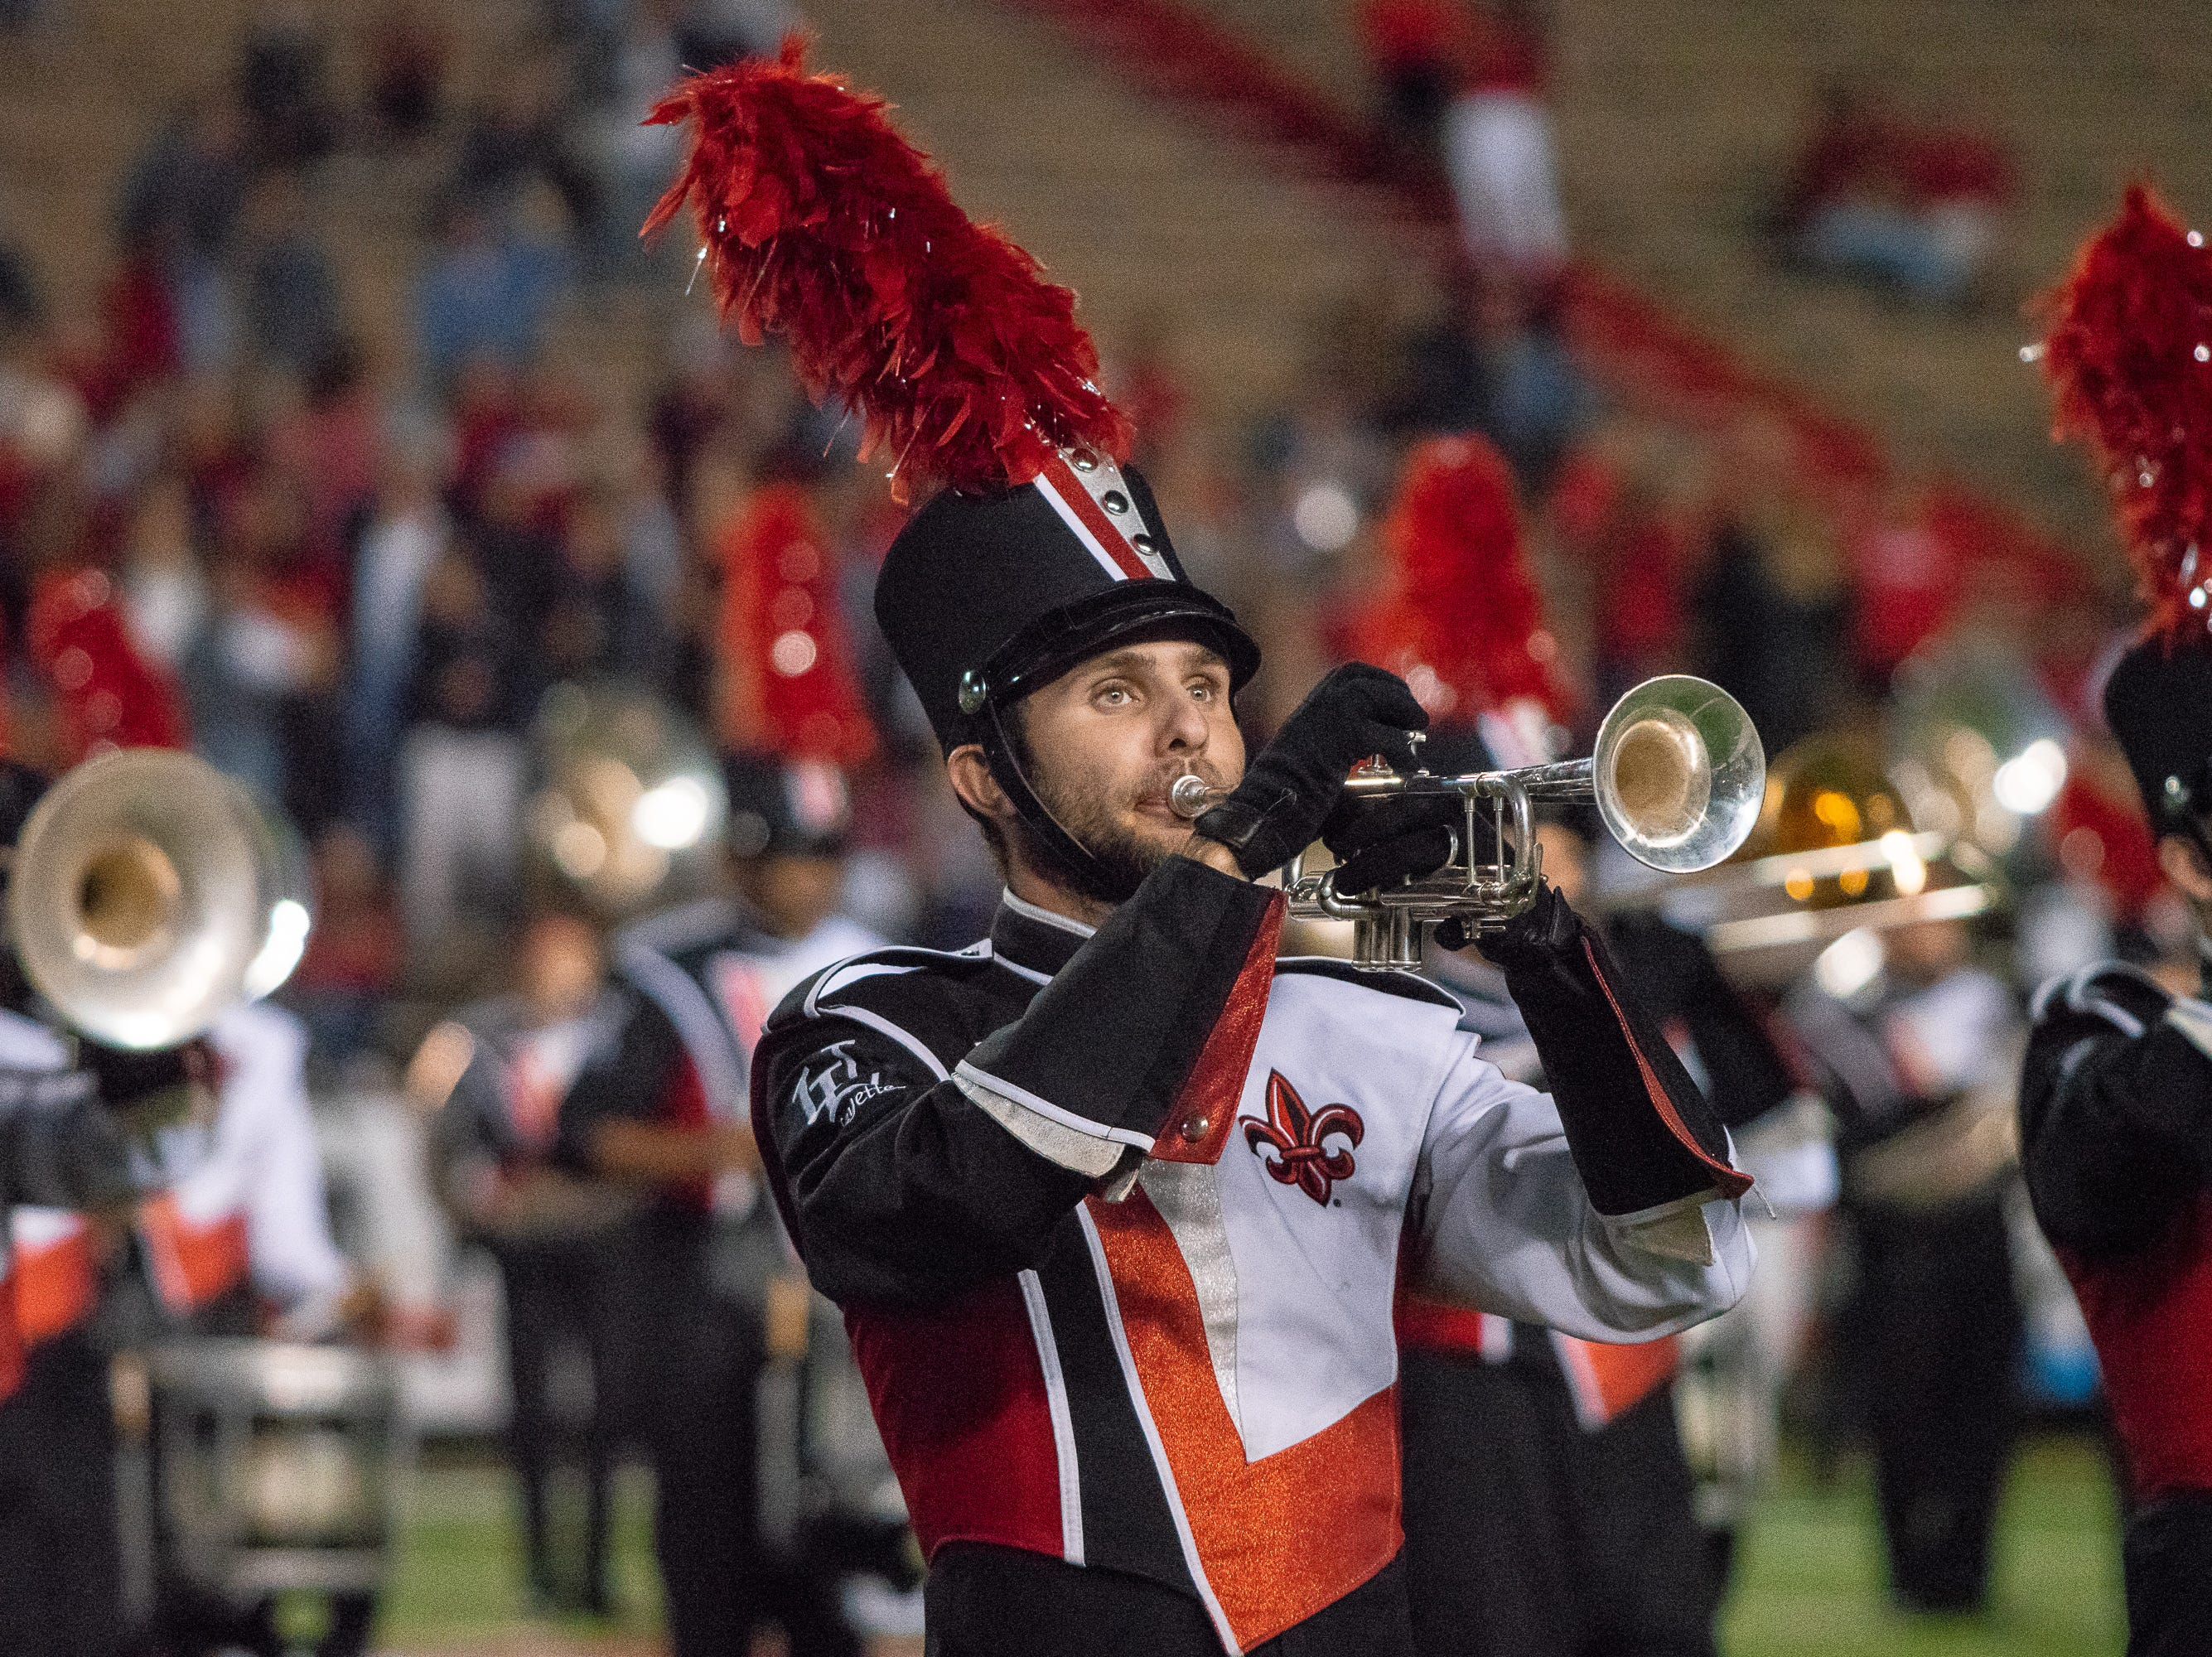 The Pride of Acadiana performs at half-time as the Ragin' Cajuns play against the South Alabama Jaguars at Cajun Field on November 17, 2018.